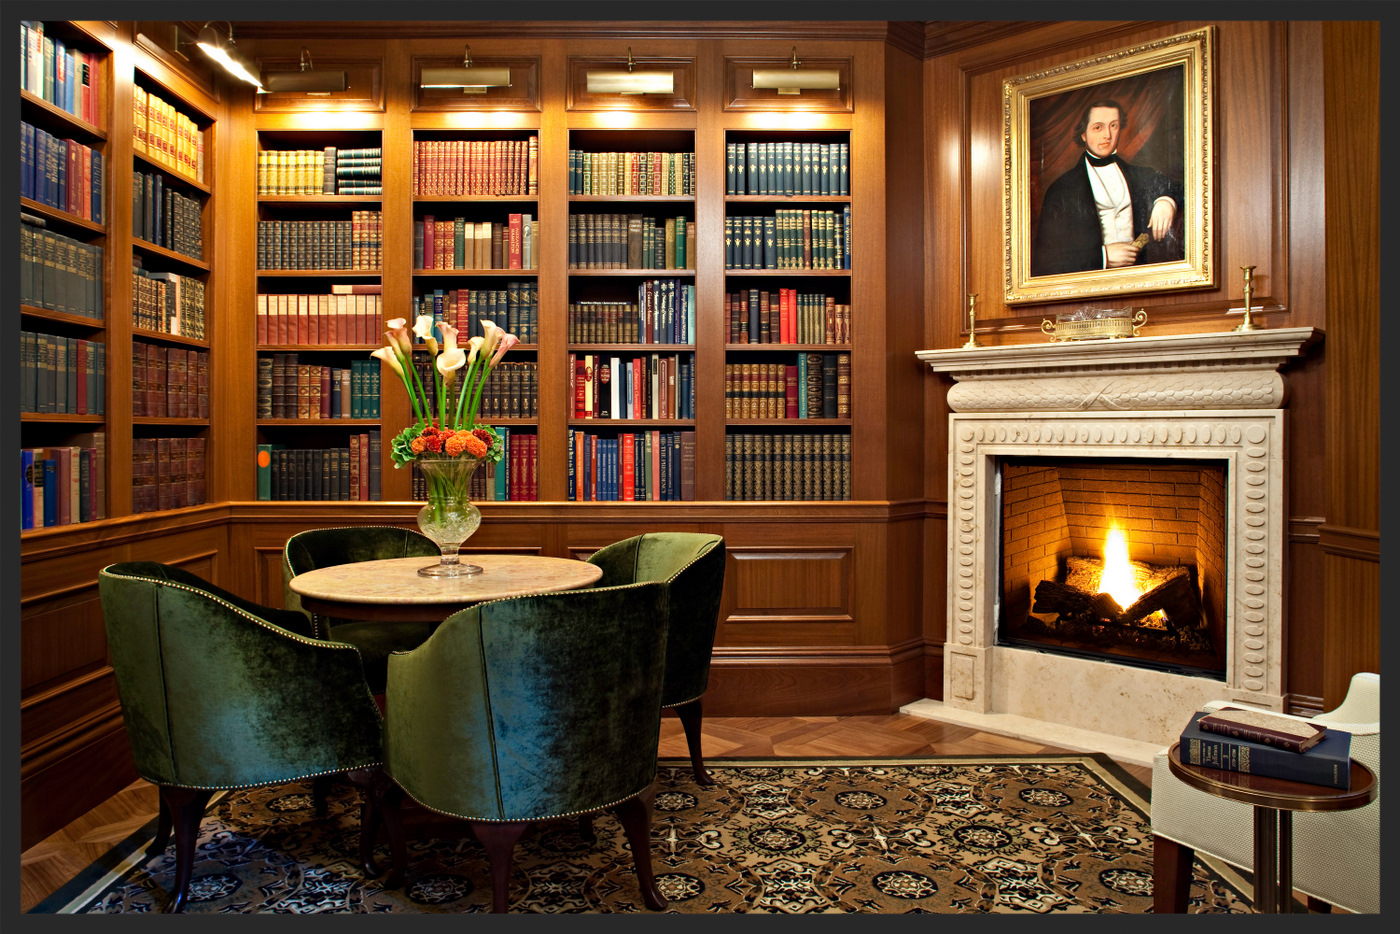 The Book Room. Nice digs.